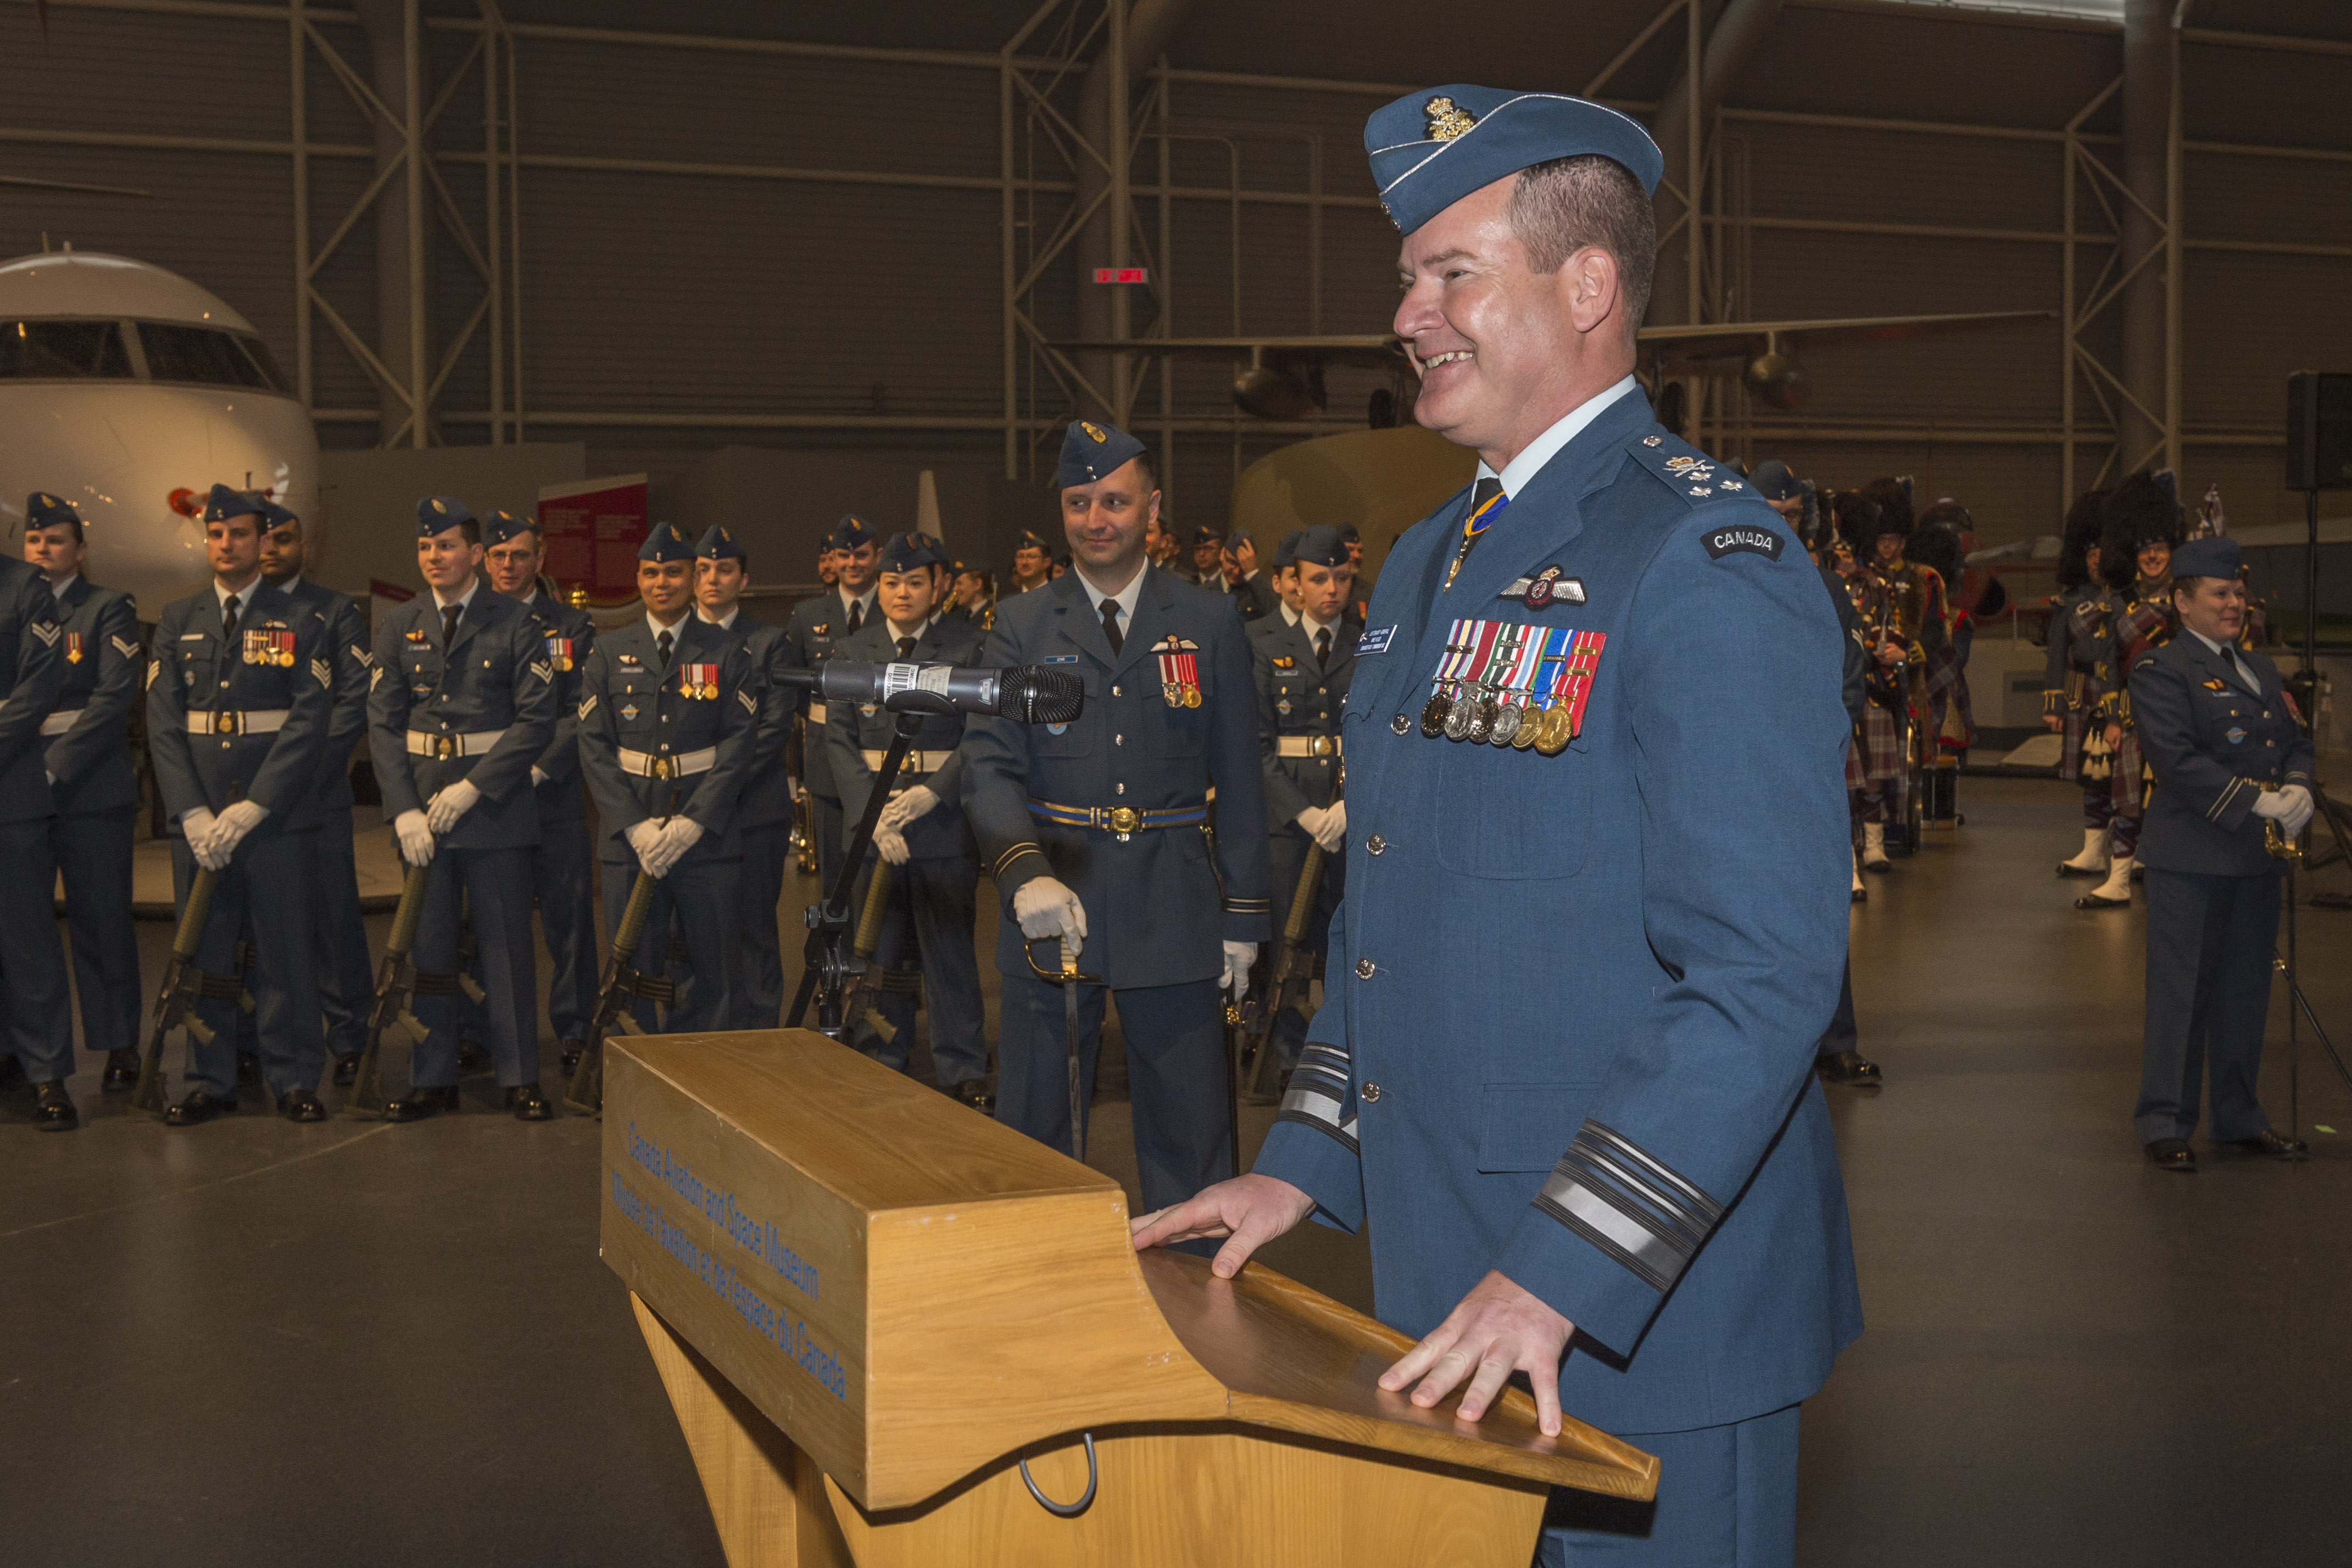 Outgoing RCAF commander, Lieutenant-General Mike Hood, addresses guests and RCAF personnel on parade during the Change of Command ceremony. PHOTO: Corporal Alana Morin, FA03-2018-0040-036